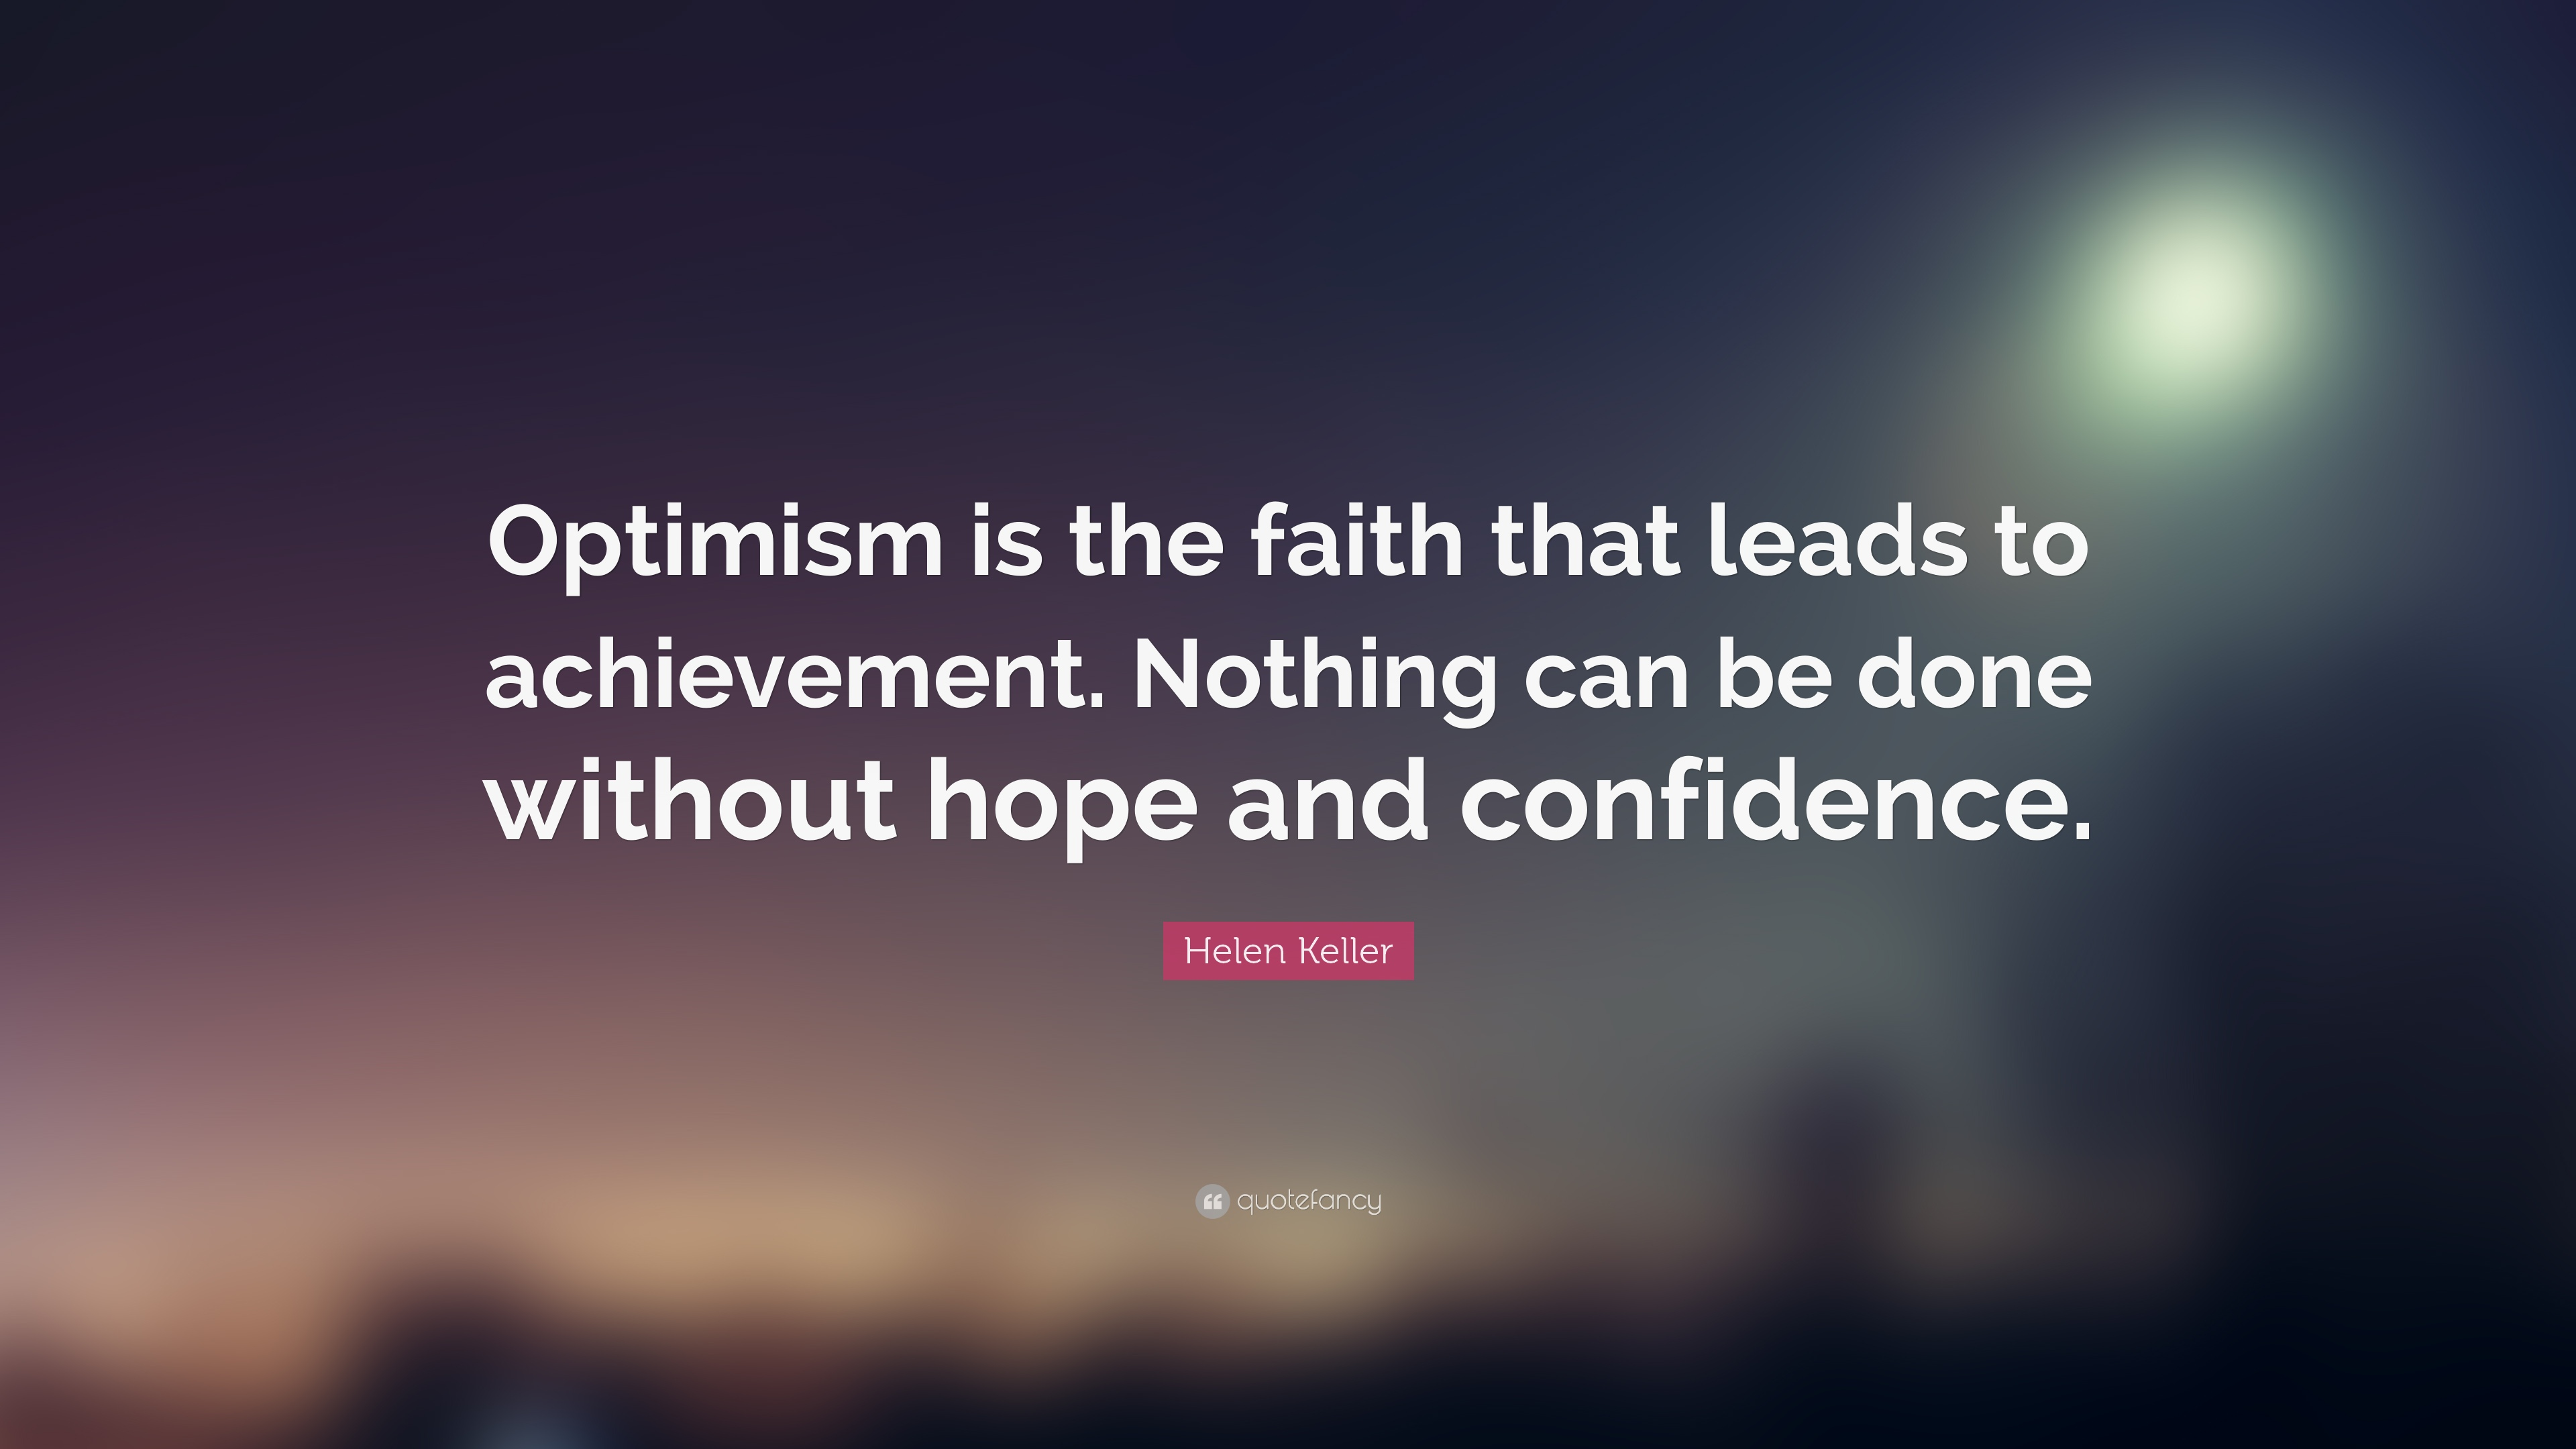 Self Motivation Quotes Wallpaper Helen Keller Quote Optimism Is The Faith That Leads To